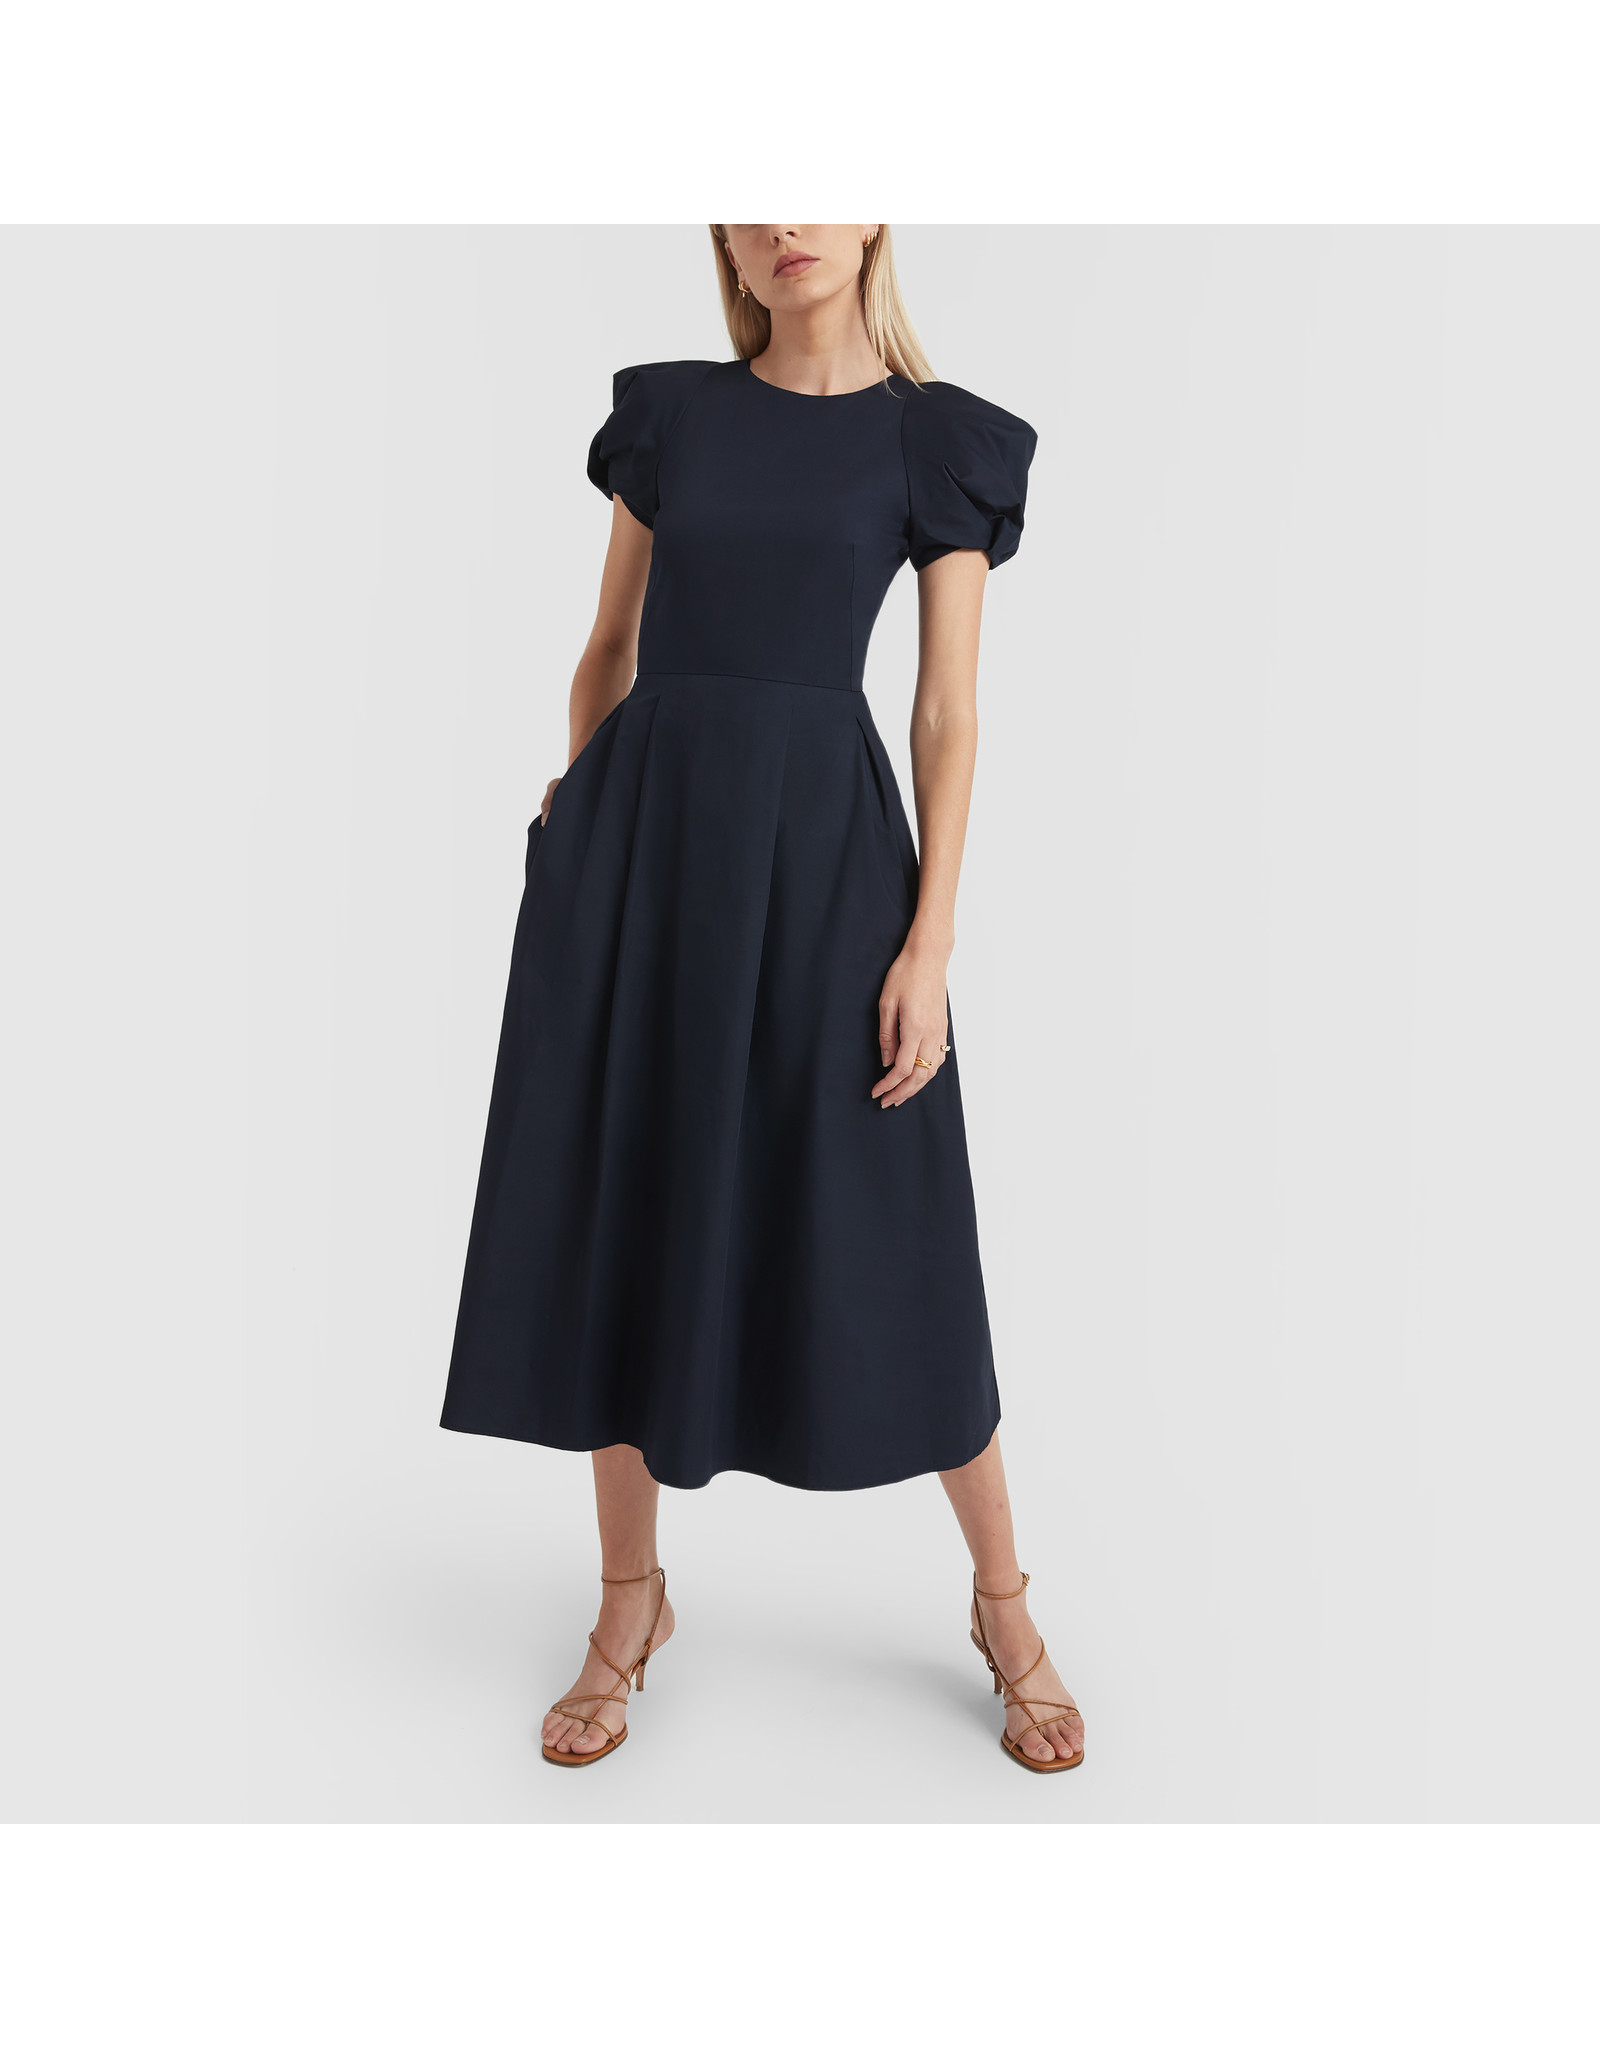 G. Label Elle Rounded Sleeve Mid Length Dress (Color: Navy, Size: 8)